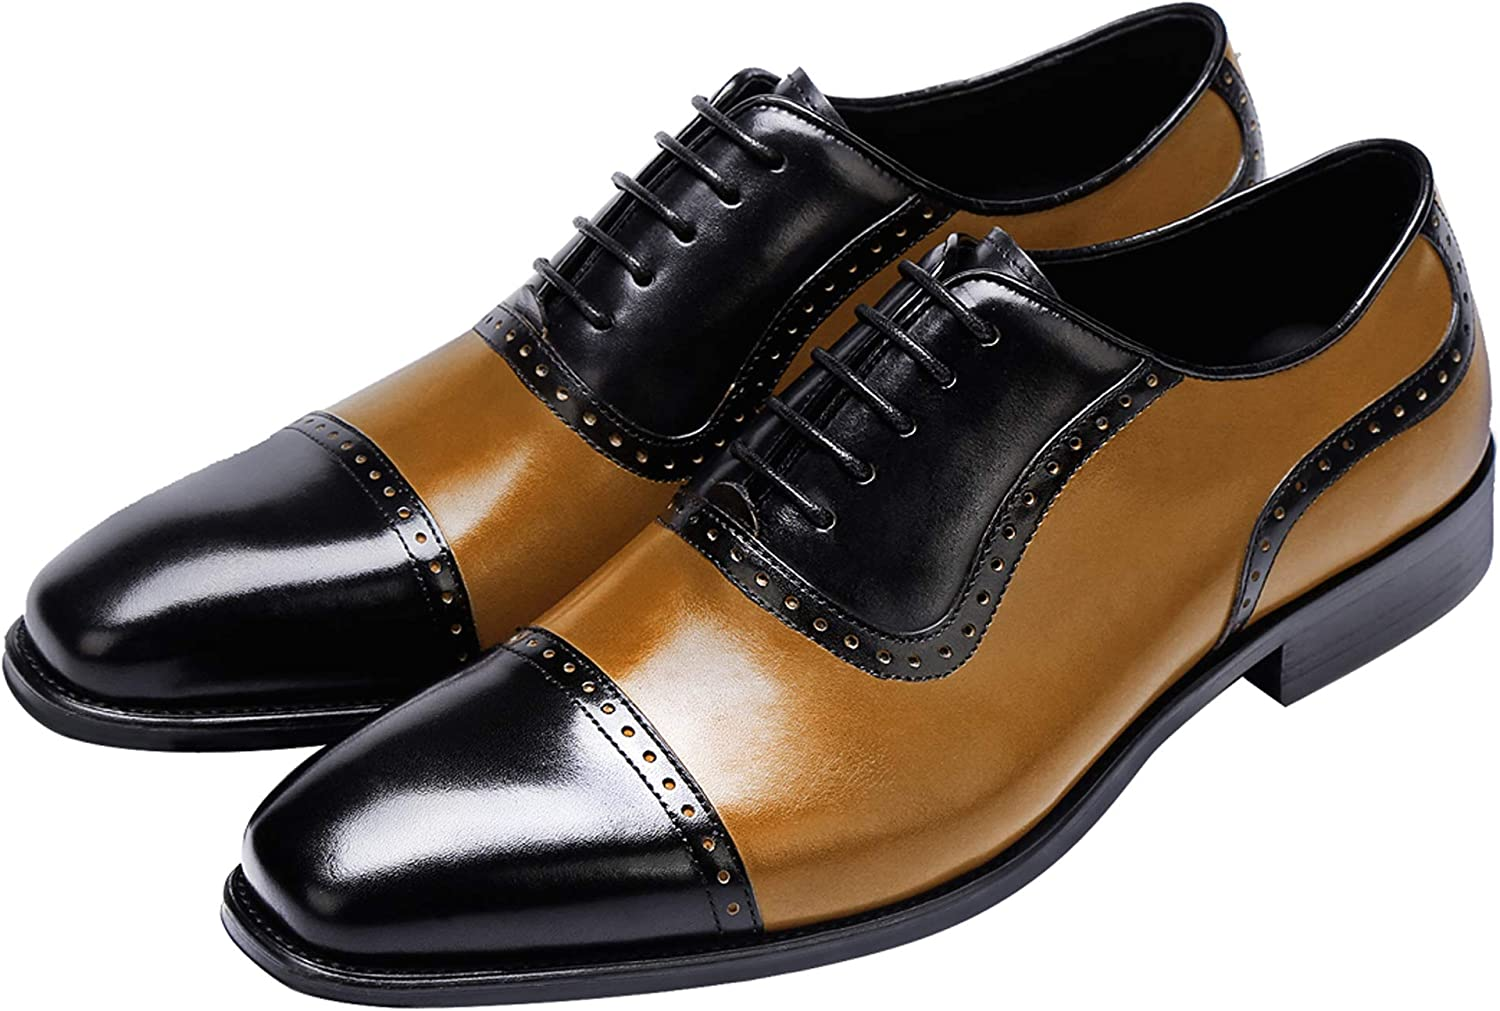 Mens Wingtip Oxford Shoes, Mens Leather Dress Shoes, Brogue Formal Lace-up Shoes for Men